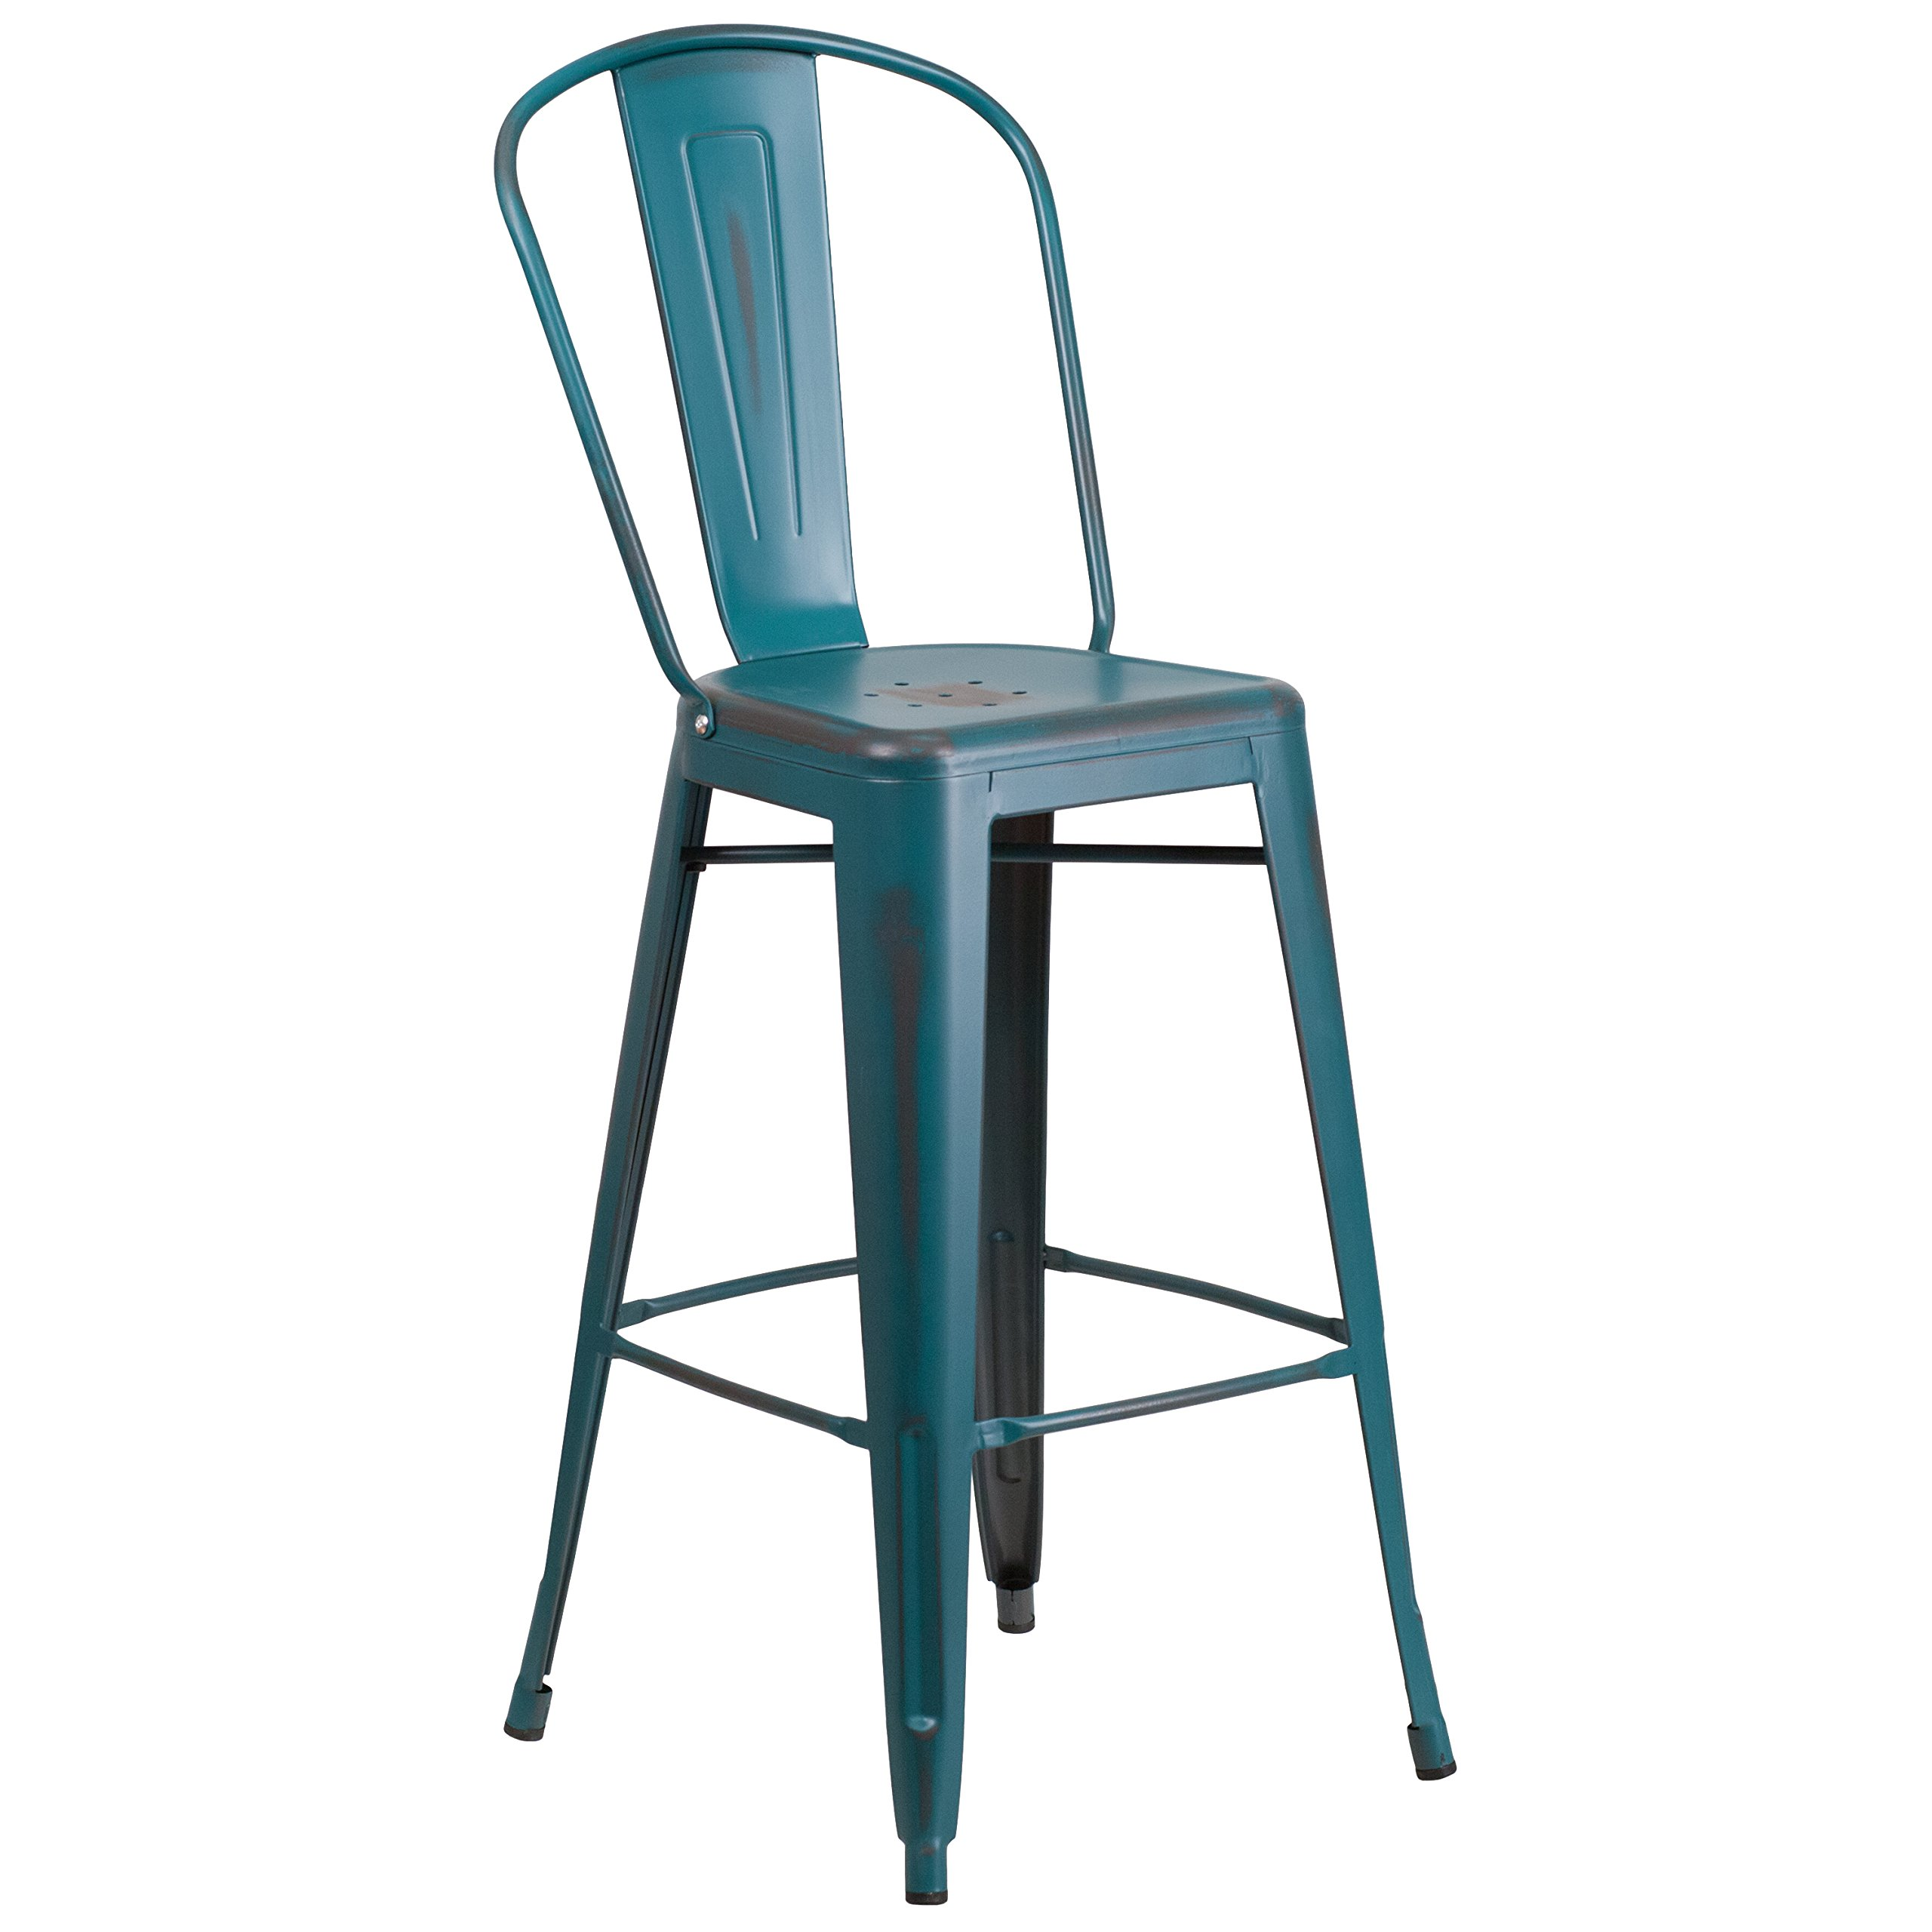 Flash Furniture 30'' High Distressed Kelly Blue-Teal Metal Indoor-Outdoor Barstool with Back by Flash Furniture